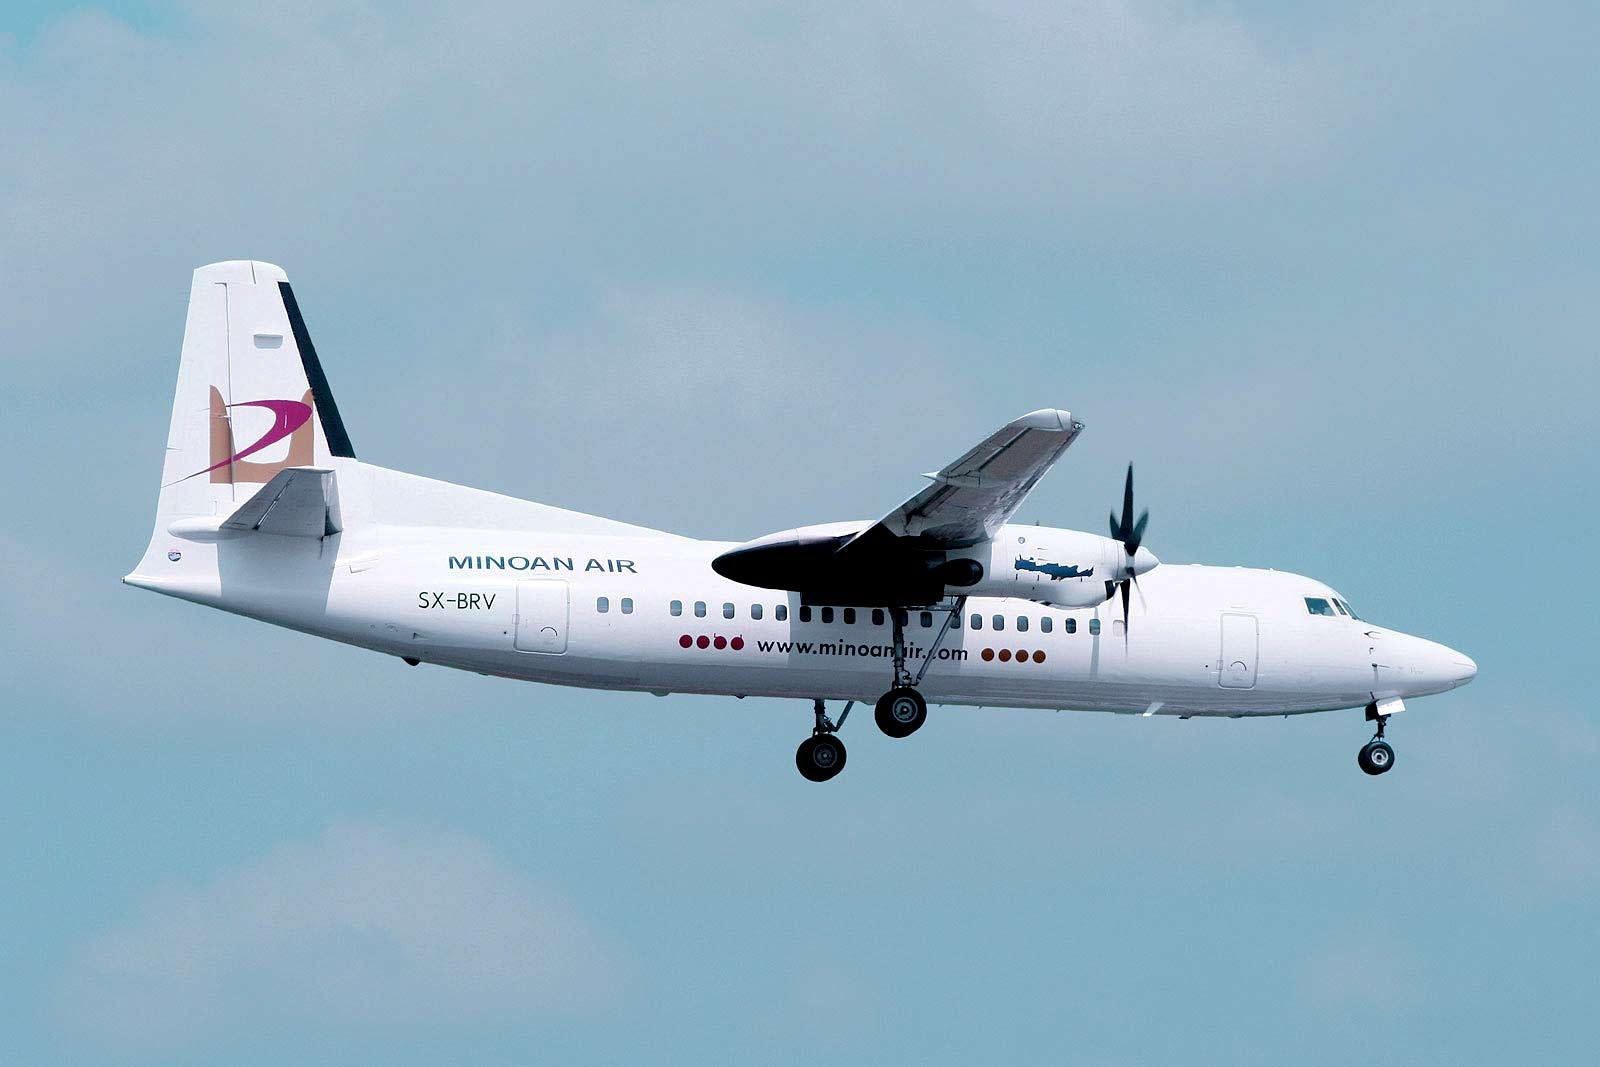 Fokker 50 SX-BRV up in the air